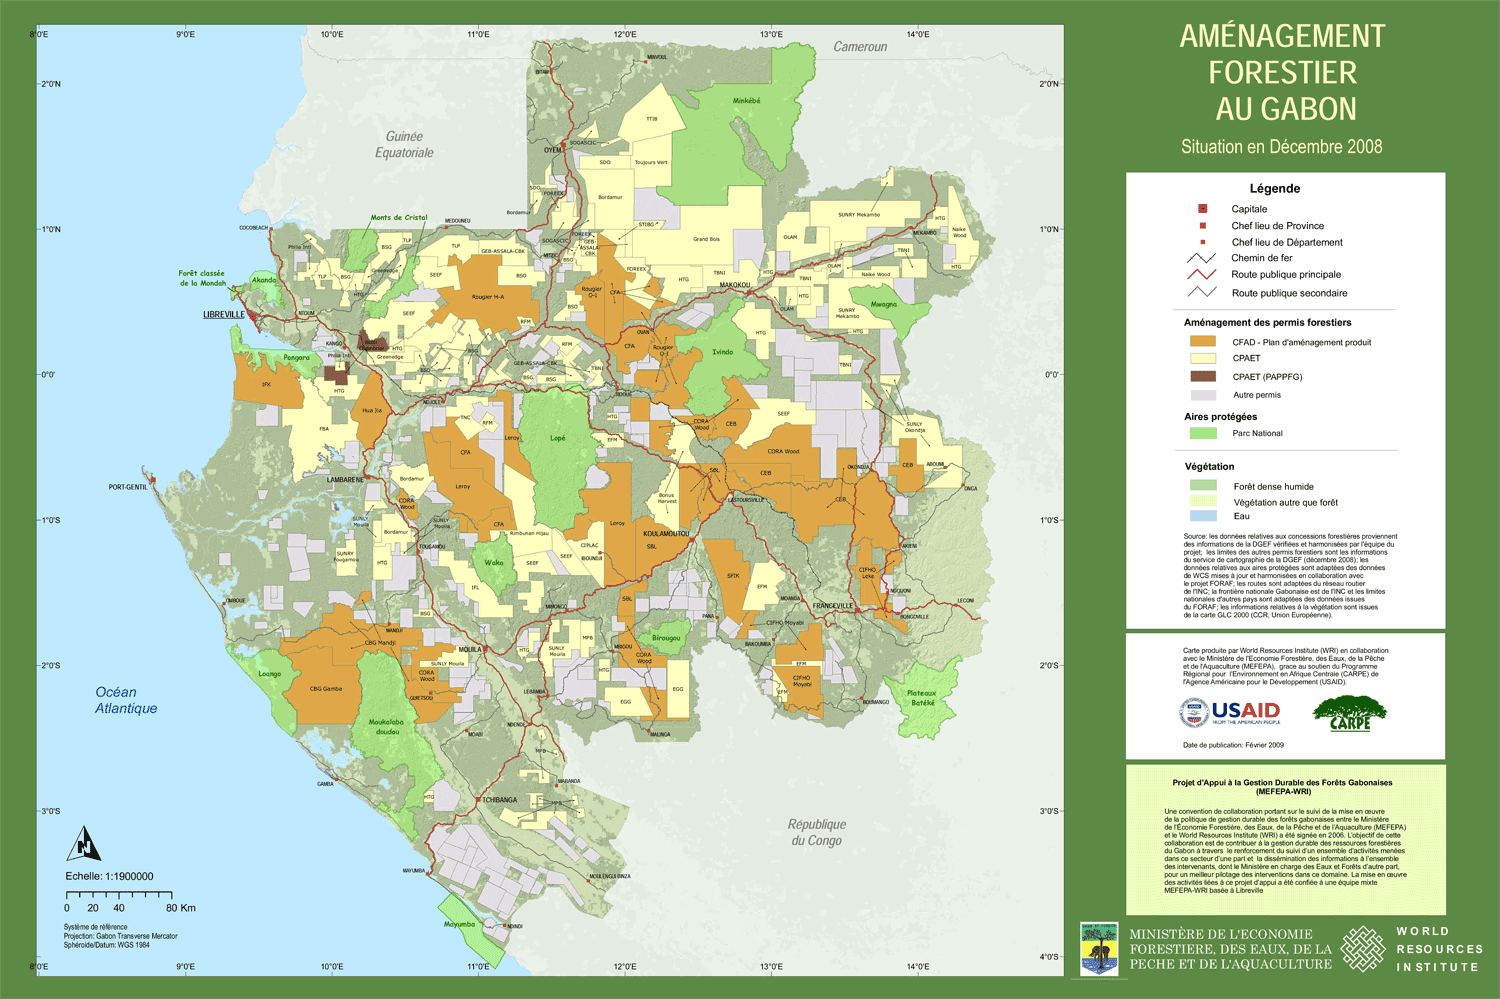 <p><strong>Forest Management in Gabon:</strong> As the official poster for the Gabon Interactive Atlas project, this map provides an overview of current logging titles and protected areas in Gabon as of December 2008.</p>